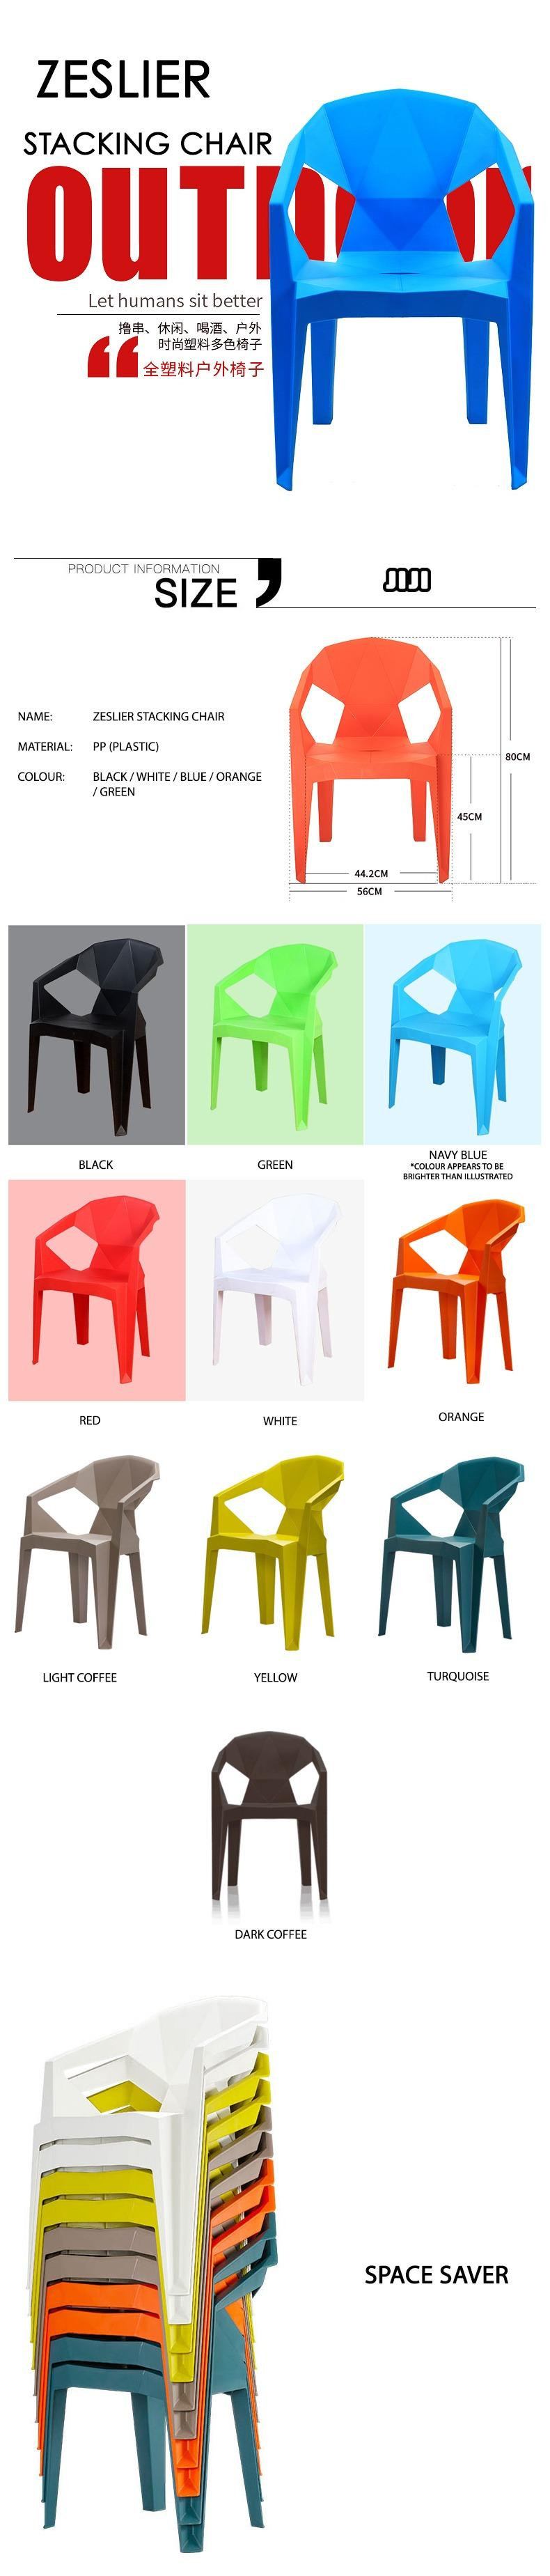 Jiji Zeslier Stacking Chair Stackable Stock In Singapore Furniture Sg